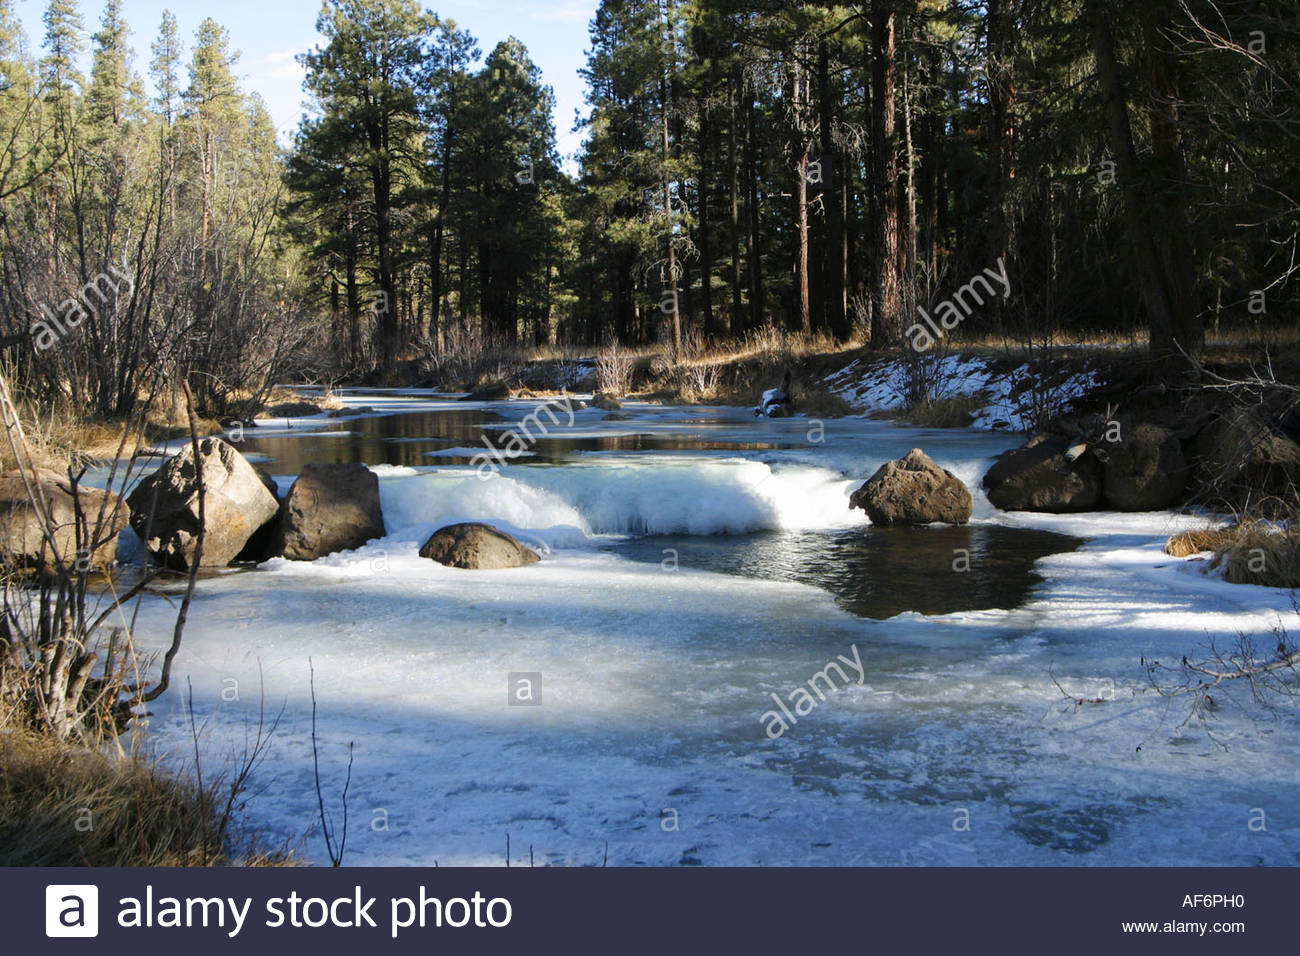 winter-scene-on-east-fork-of-black-river-in-the-white-mountains-of-AF6PH0.jpg